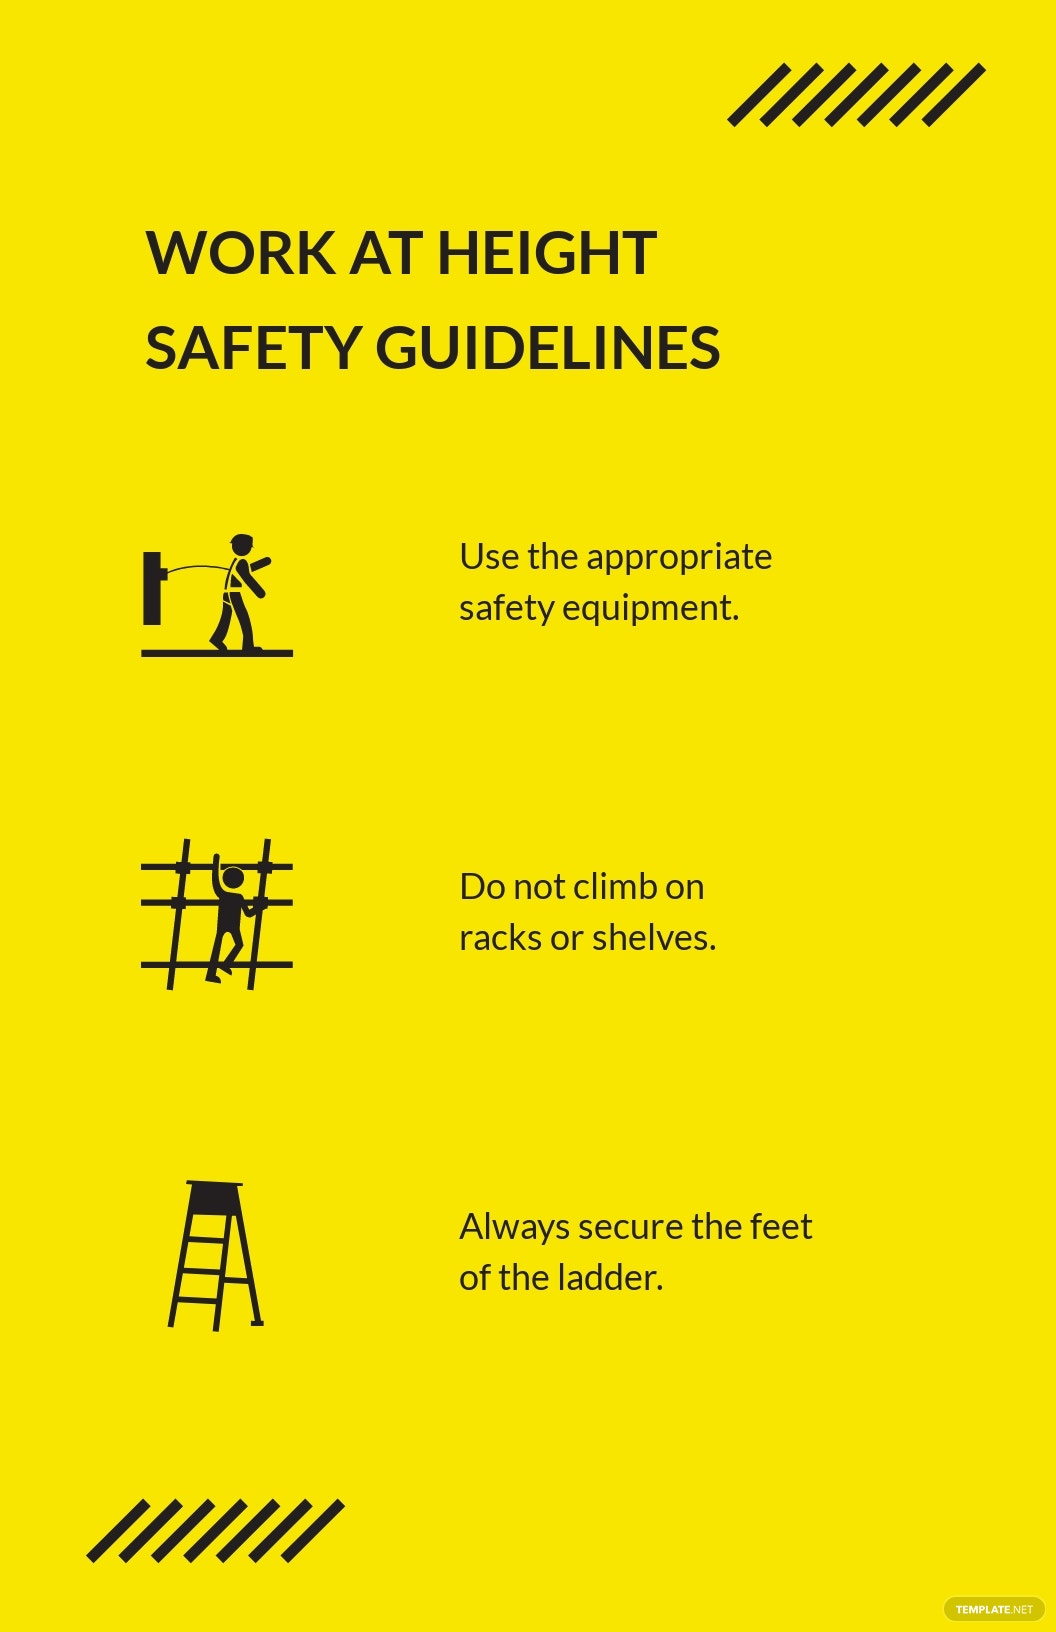 Free Work at Height Poster Template.jpe